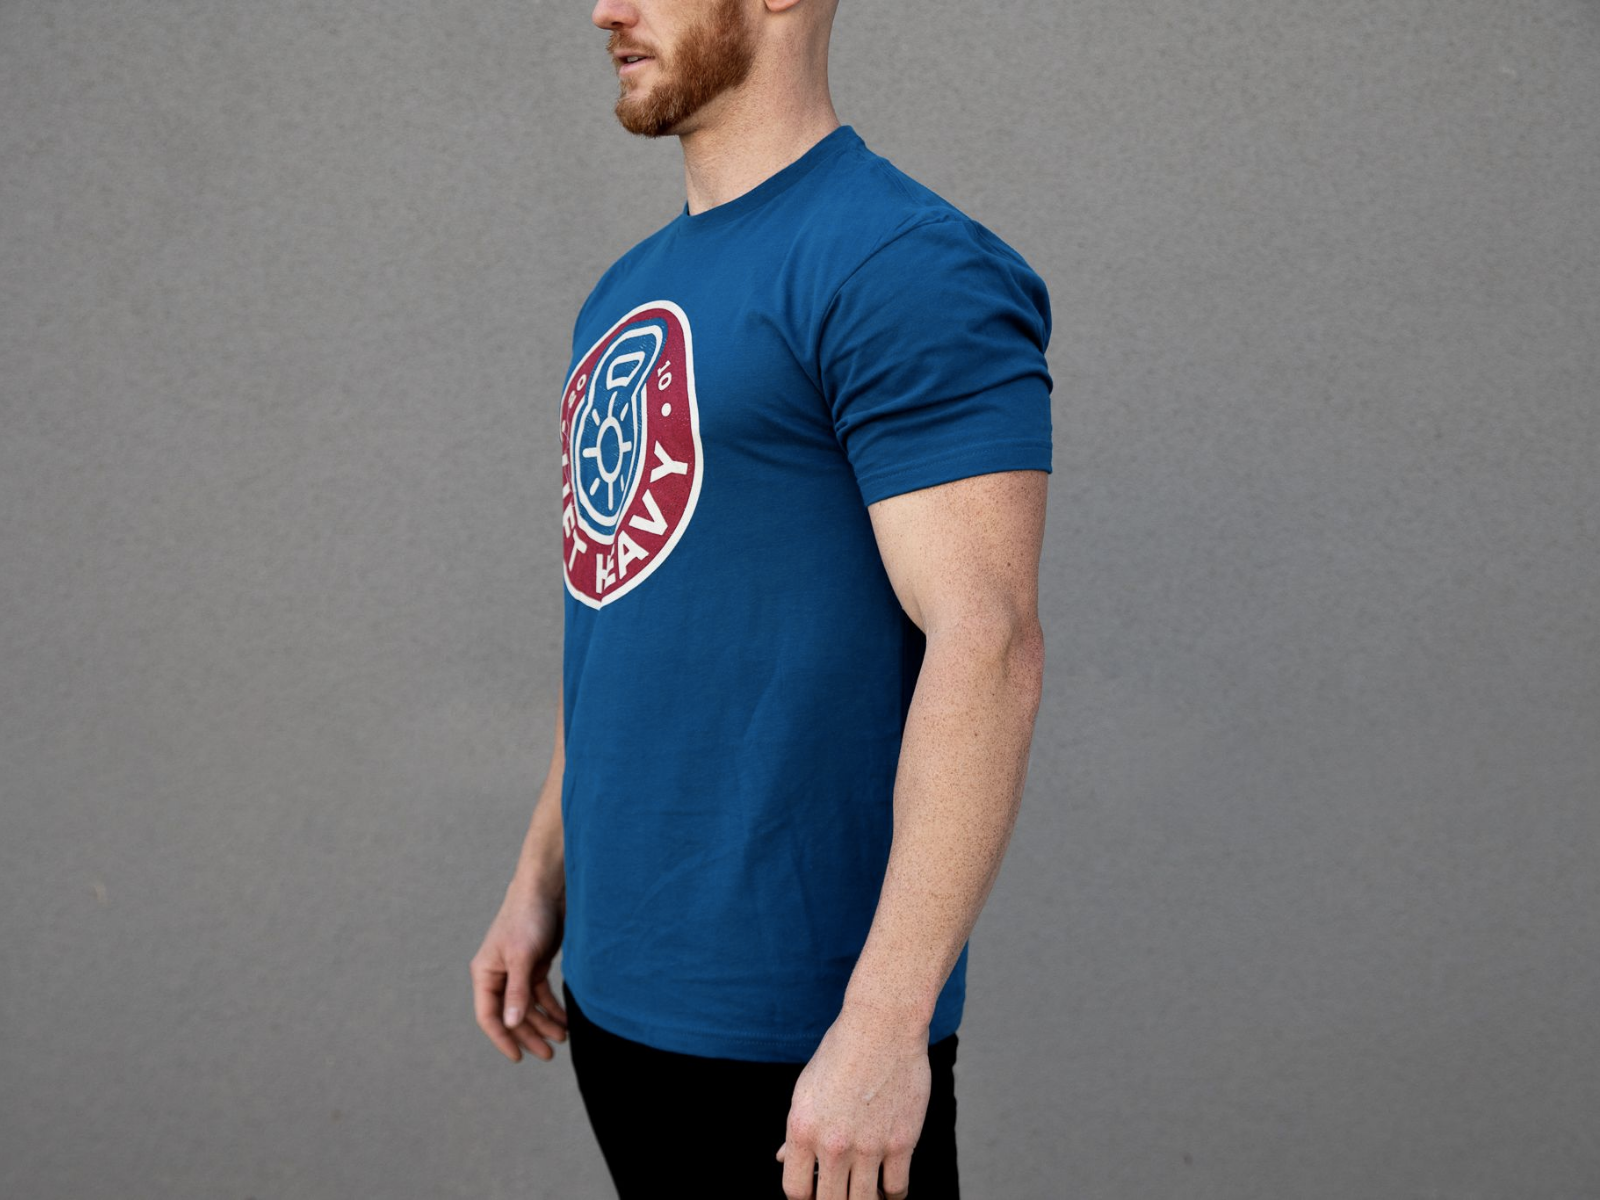 Royal Blue Lift Heavy T-Shirt - 2POOD